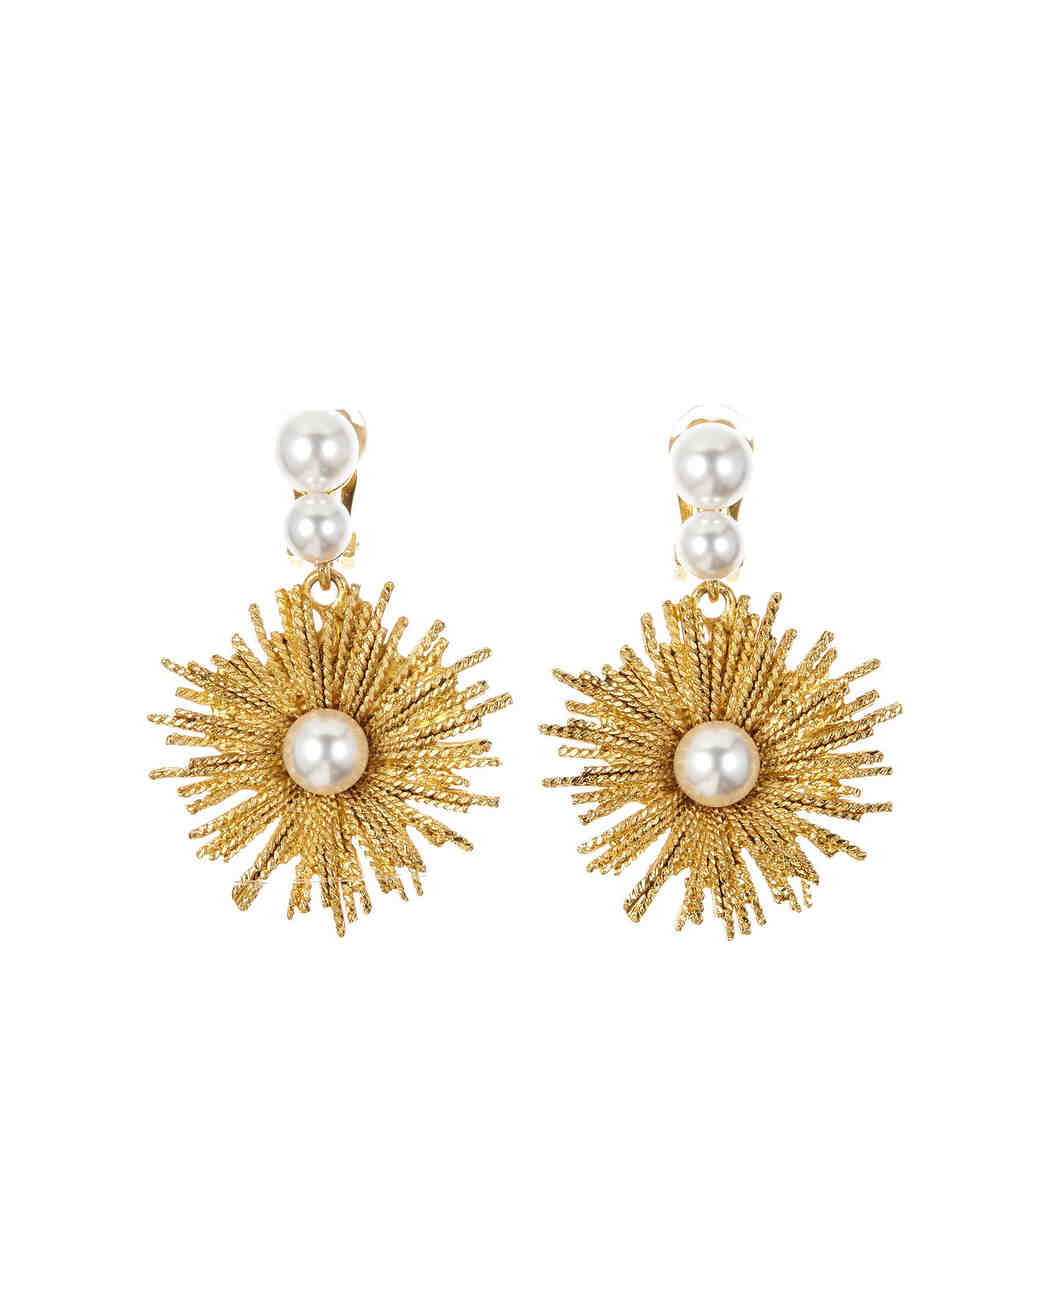 pearl wedding earrings oscar de la renta